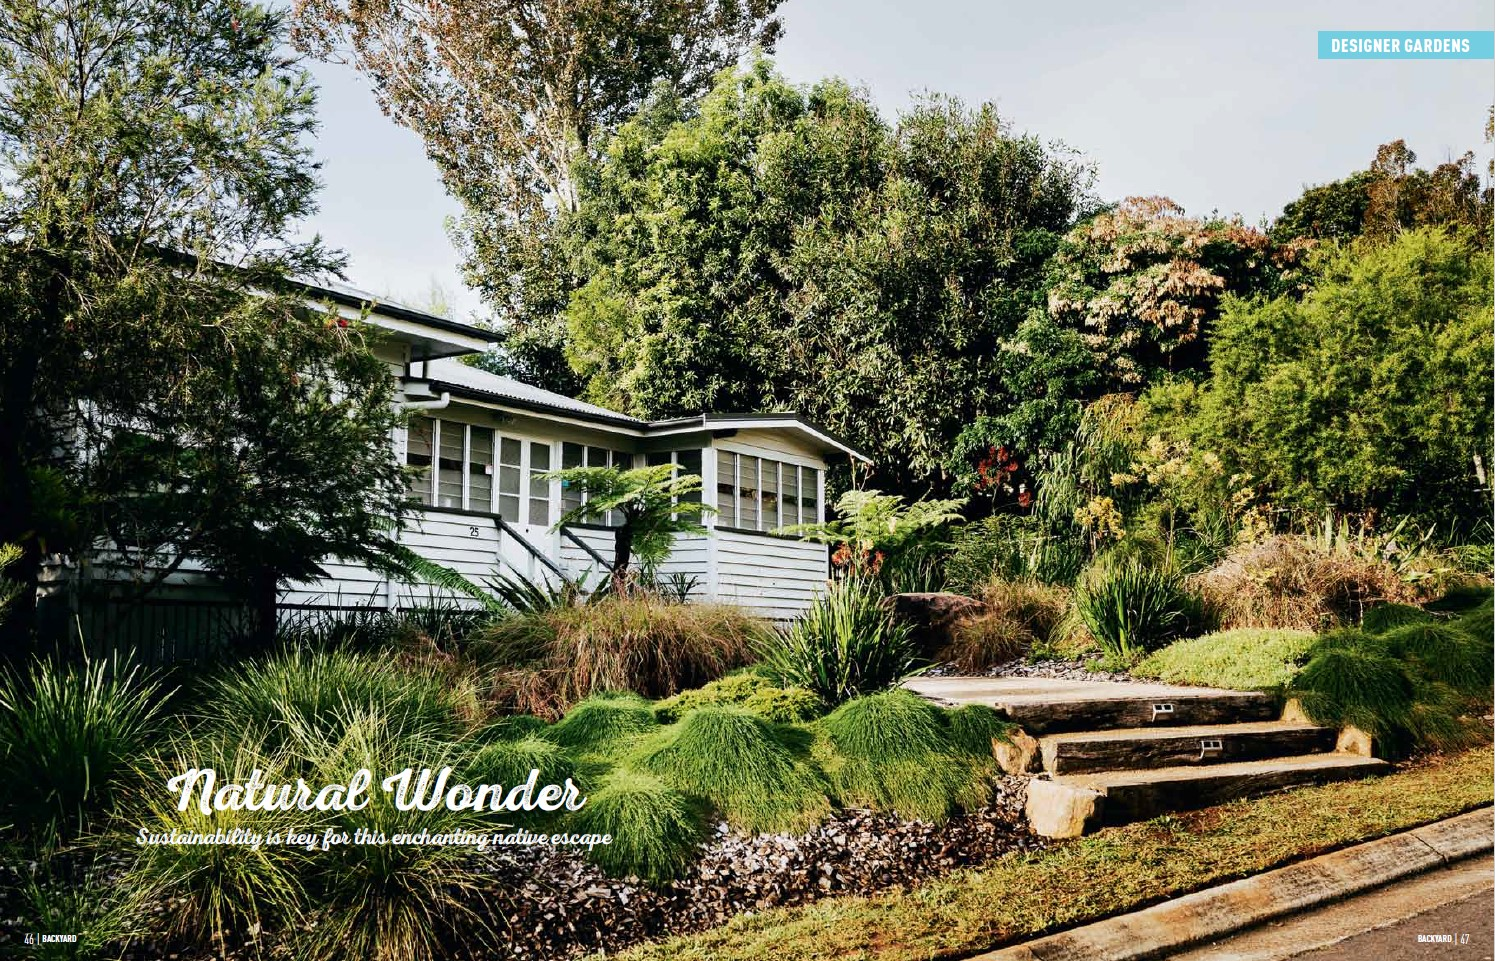 Backyard Magazine Feature Designer Gardens by Regenerative Designs Australia Landscaping Garden Landscape Design Sunshine Coast Pg1.jpg